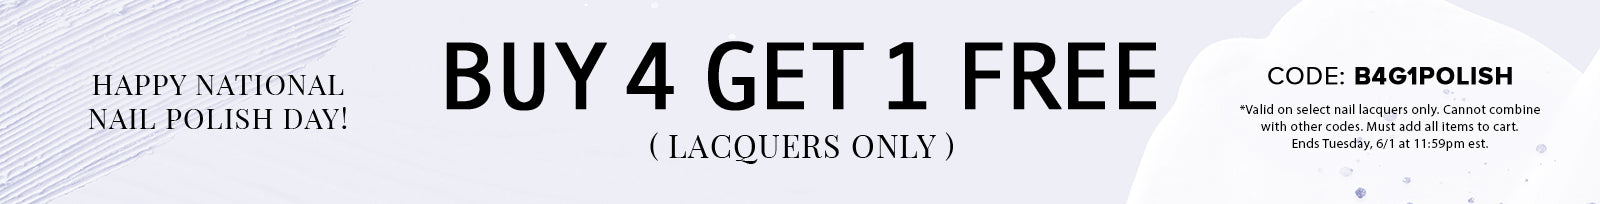 National Nail Polish Day - Buy 4 Lacquers, Get 1 Free